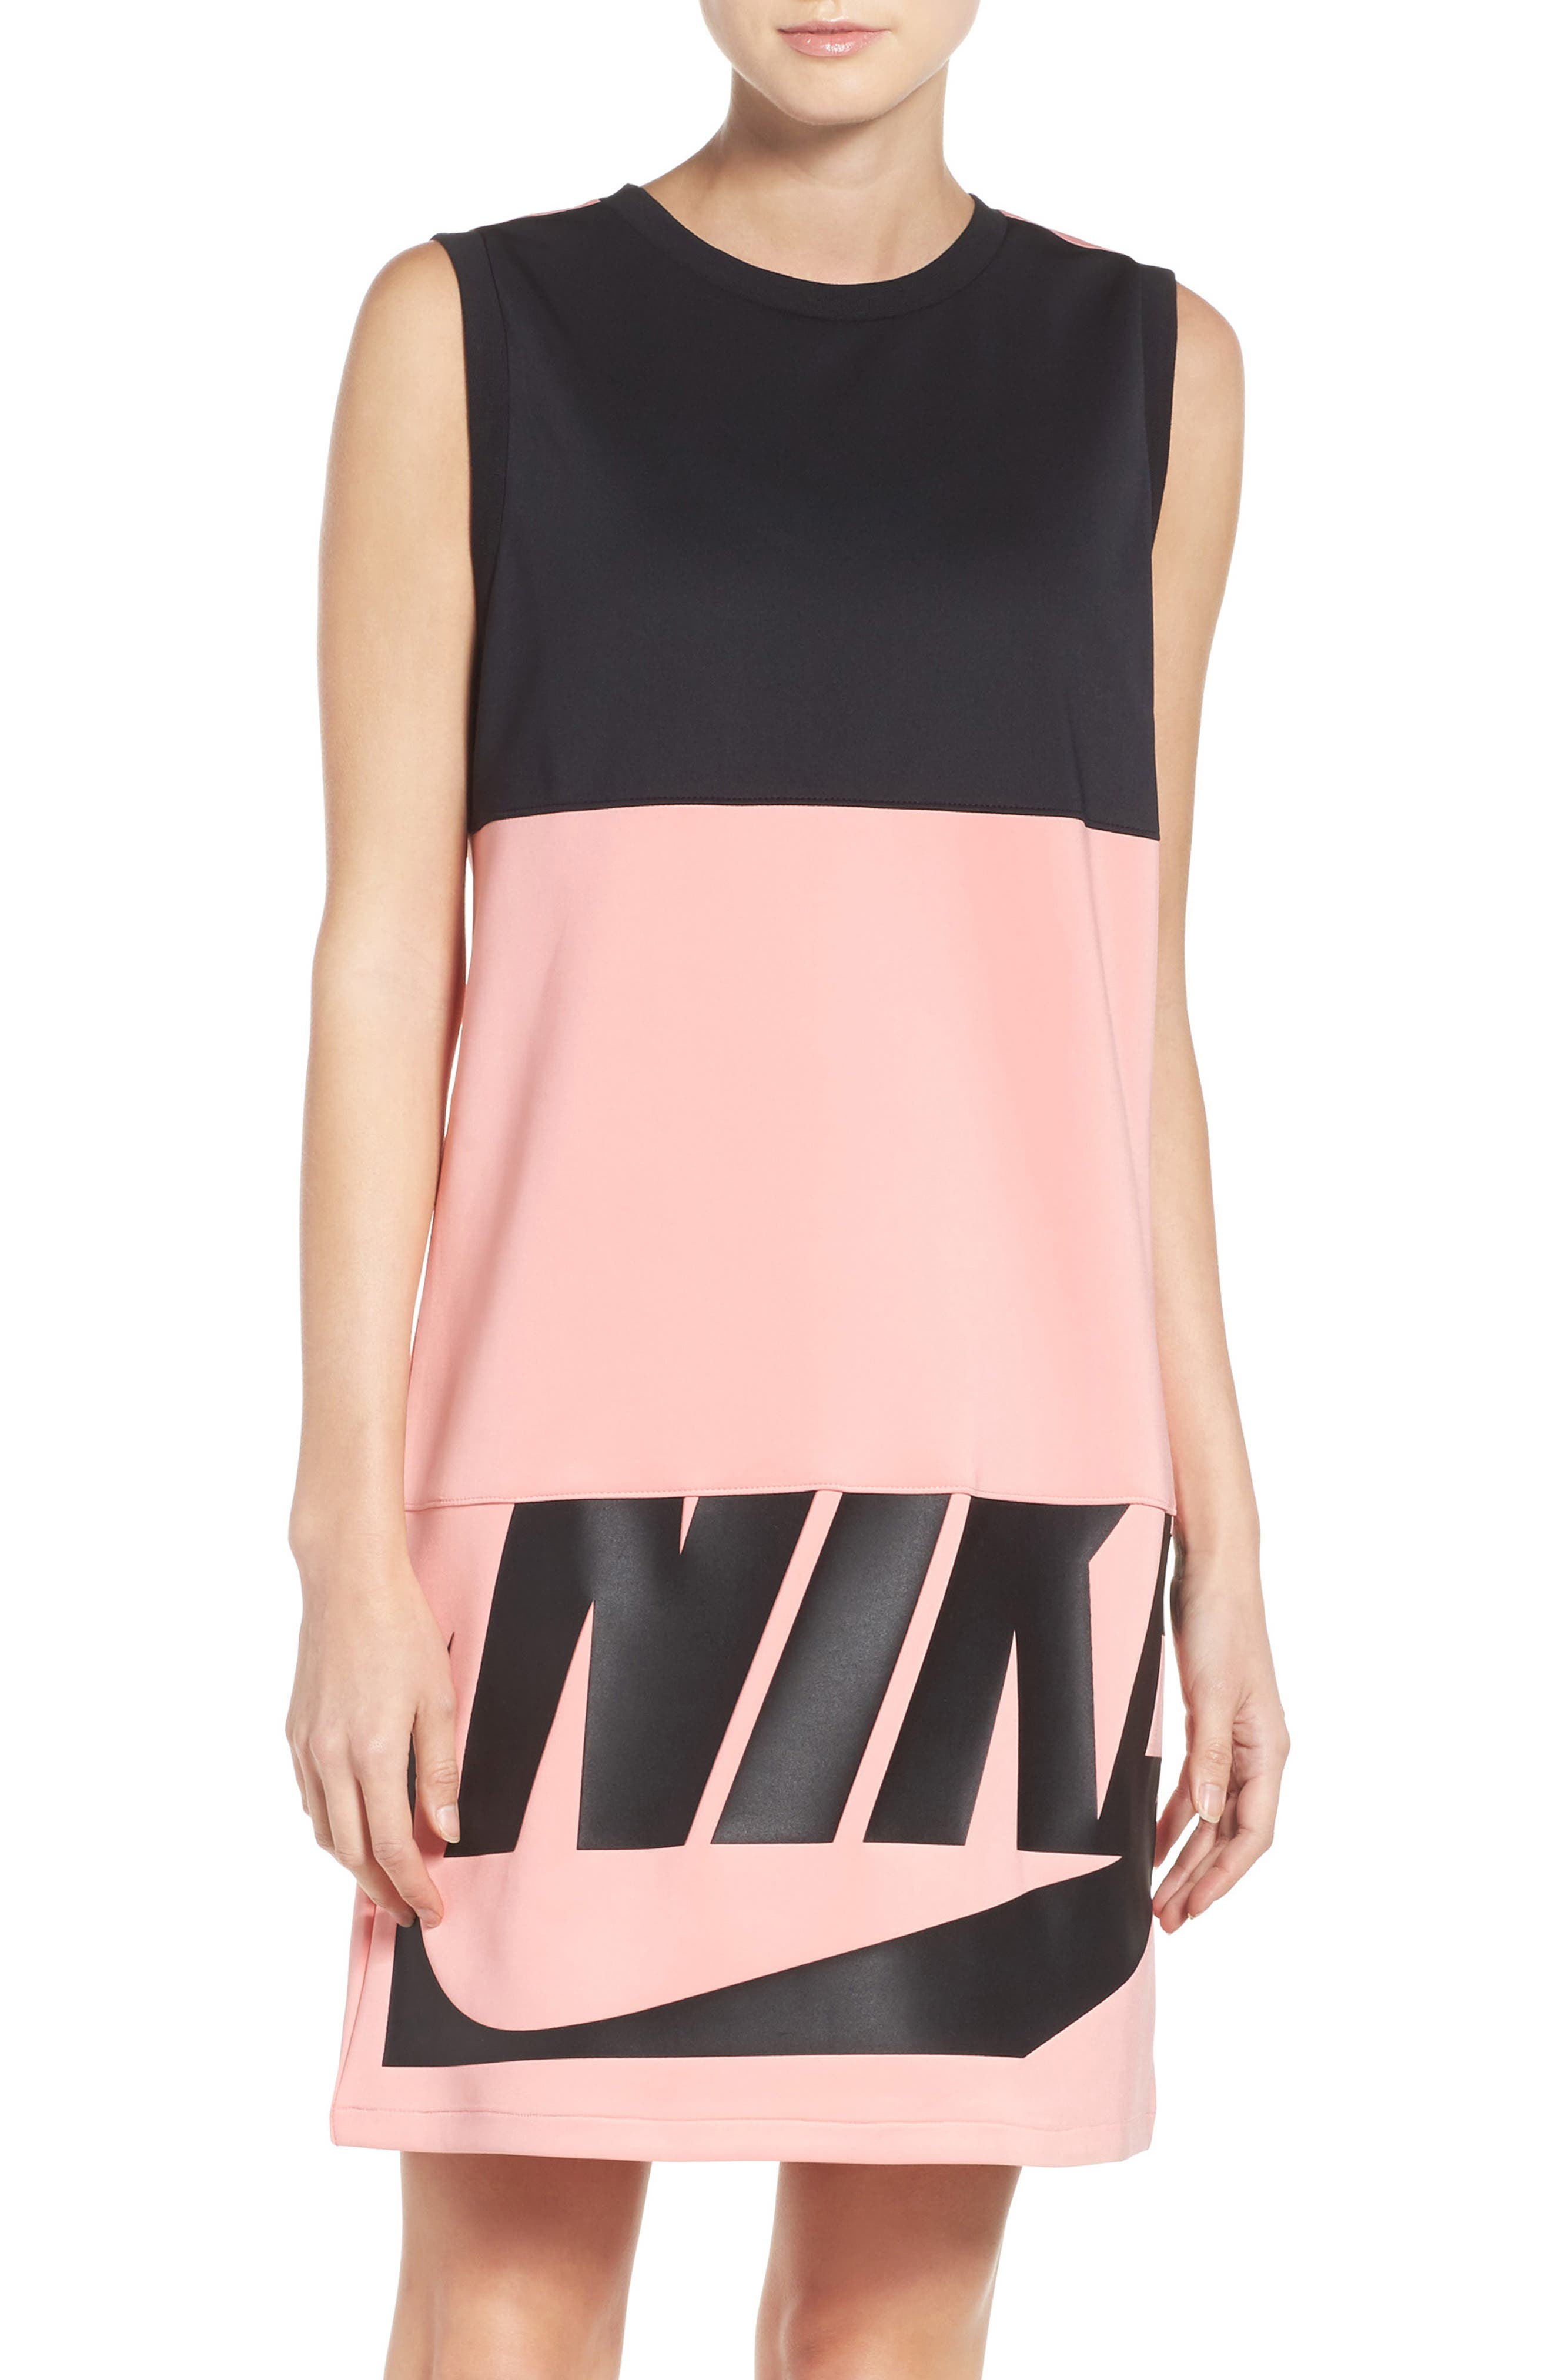 NIKE Irreverent Tank Dress, Main, color, 010